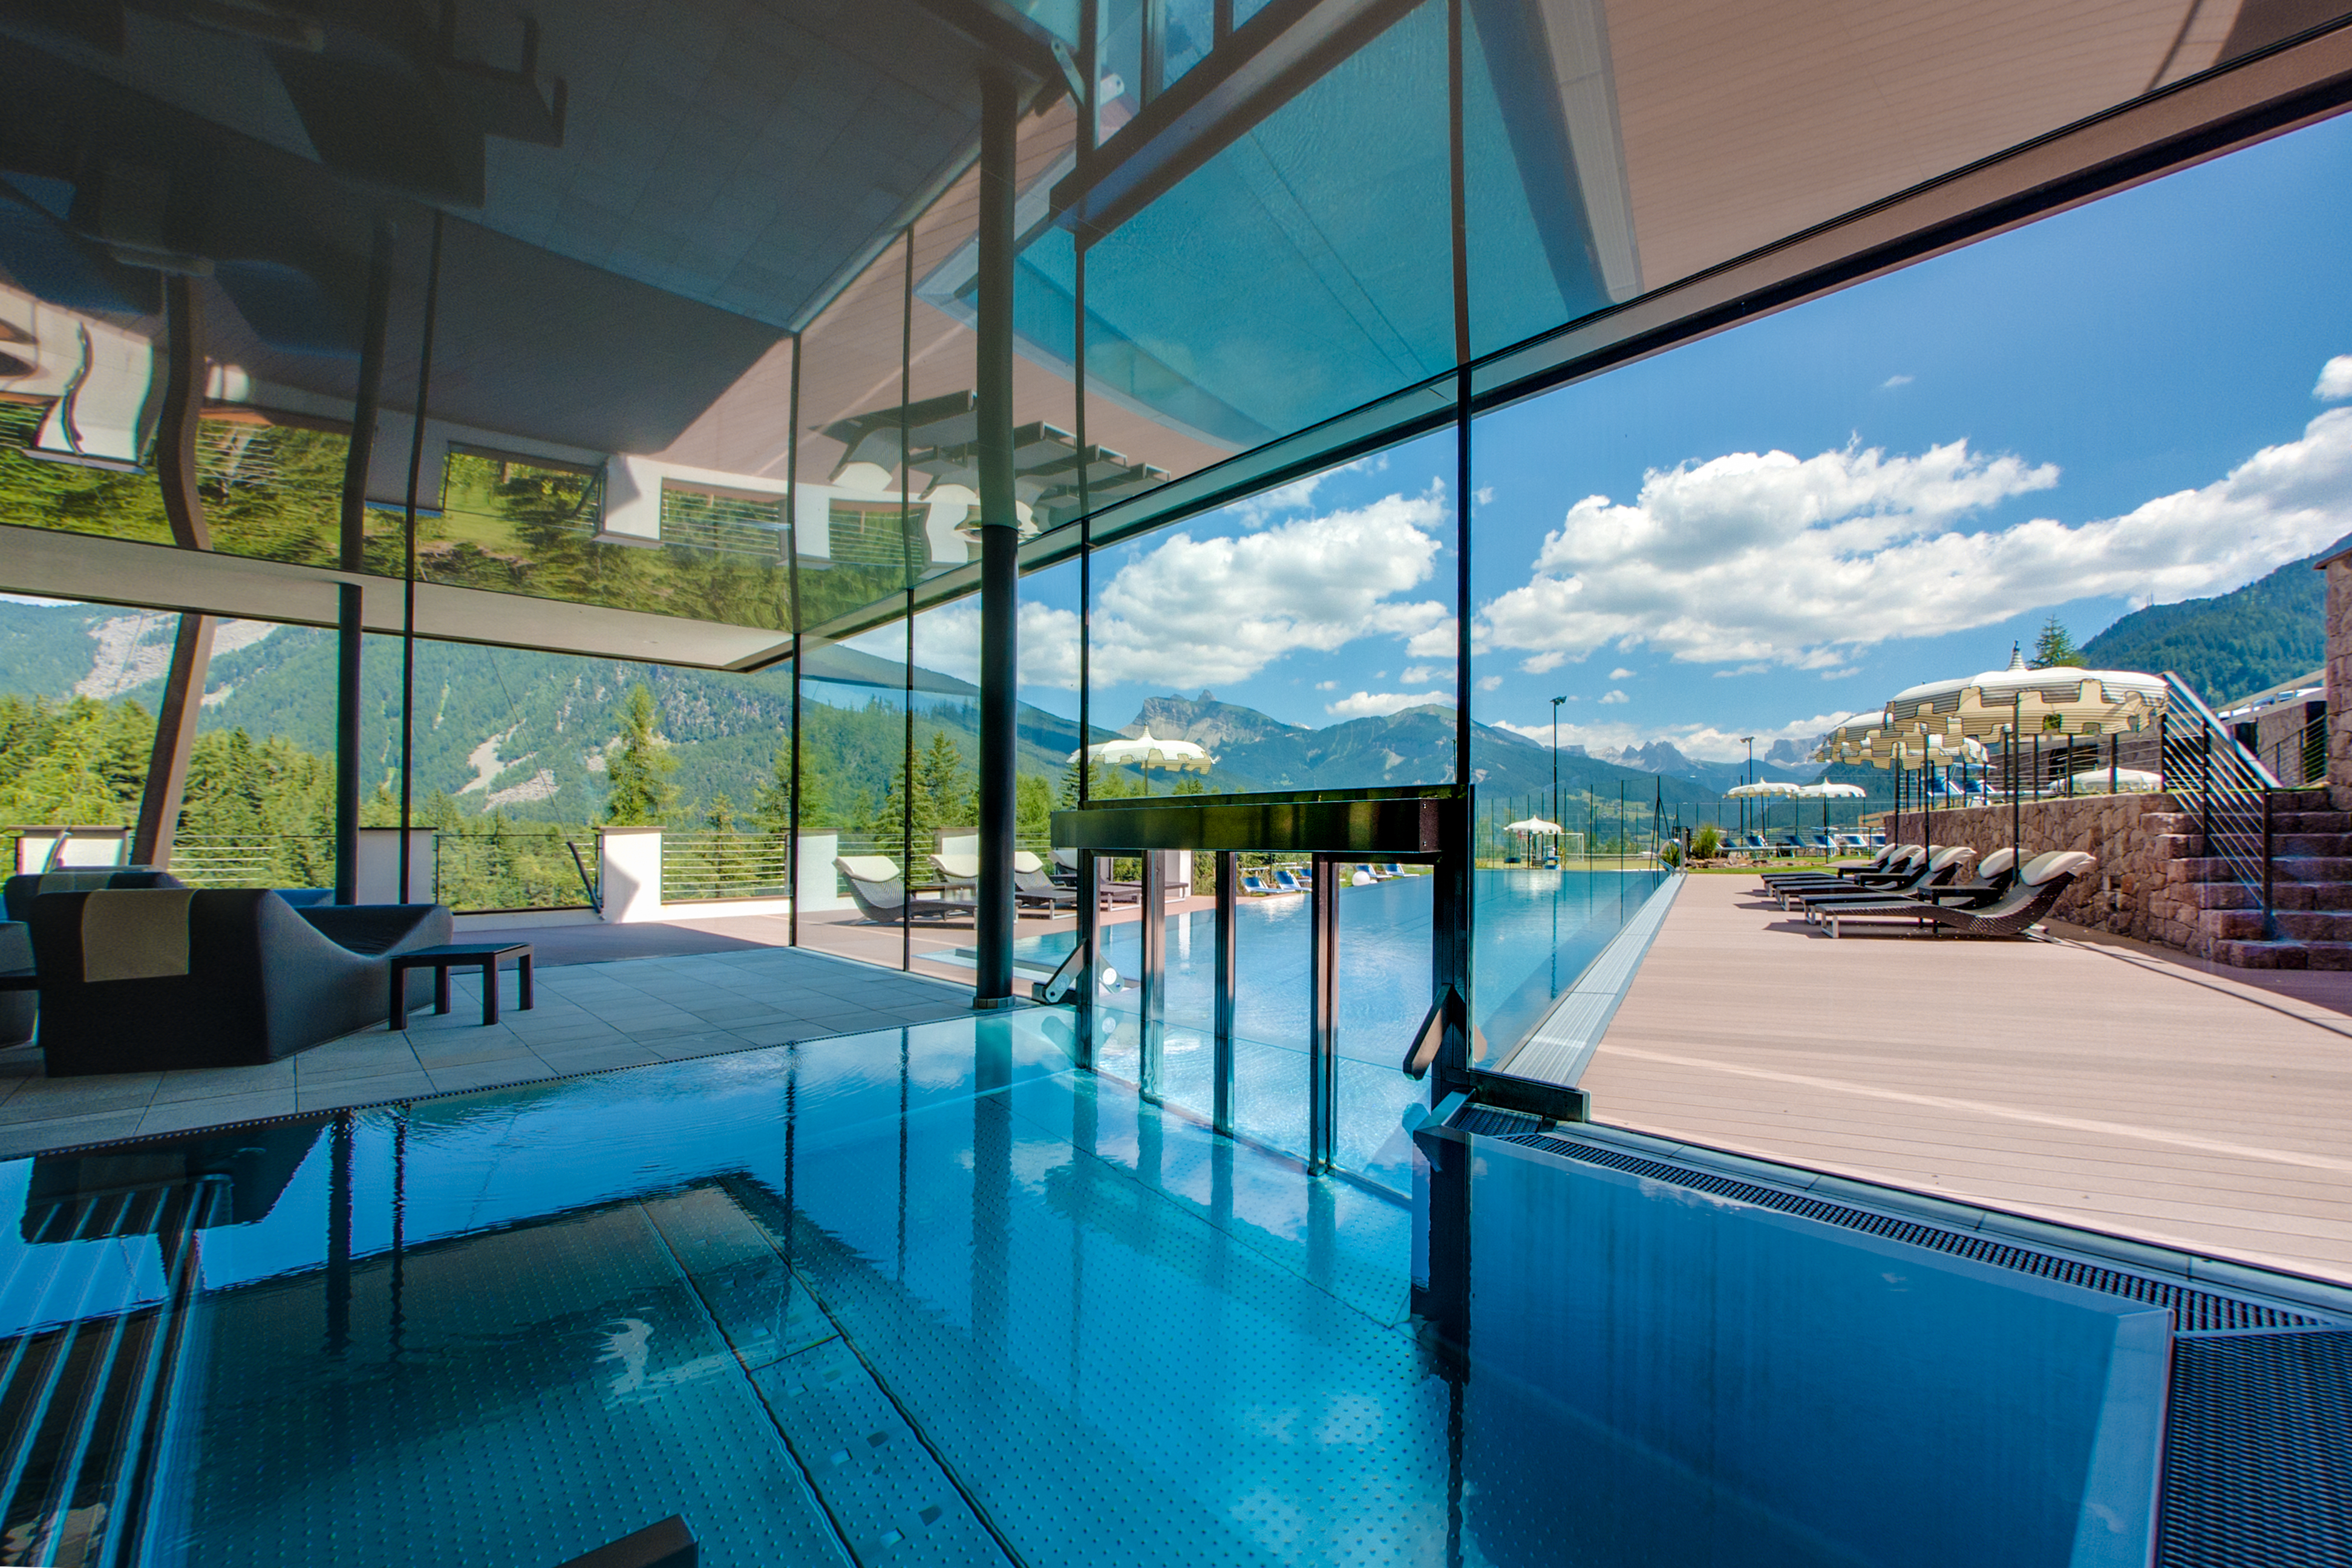 Stampa hotel albion s in val gardena - Hotel piscina valle aurina ...